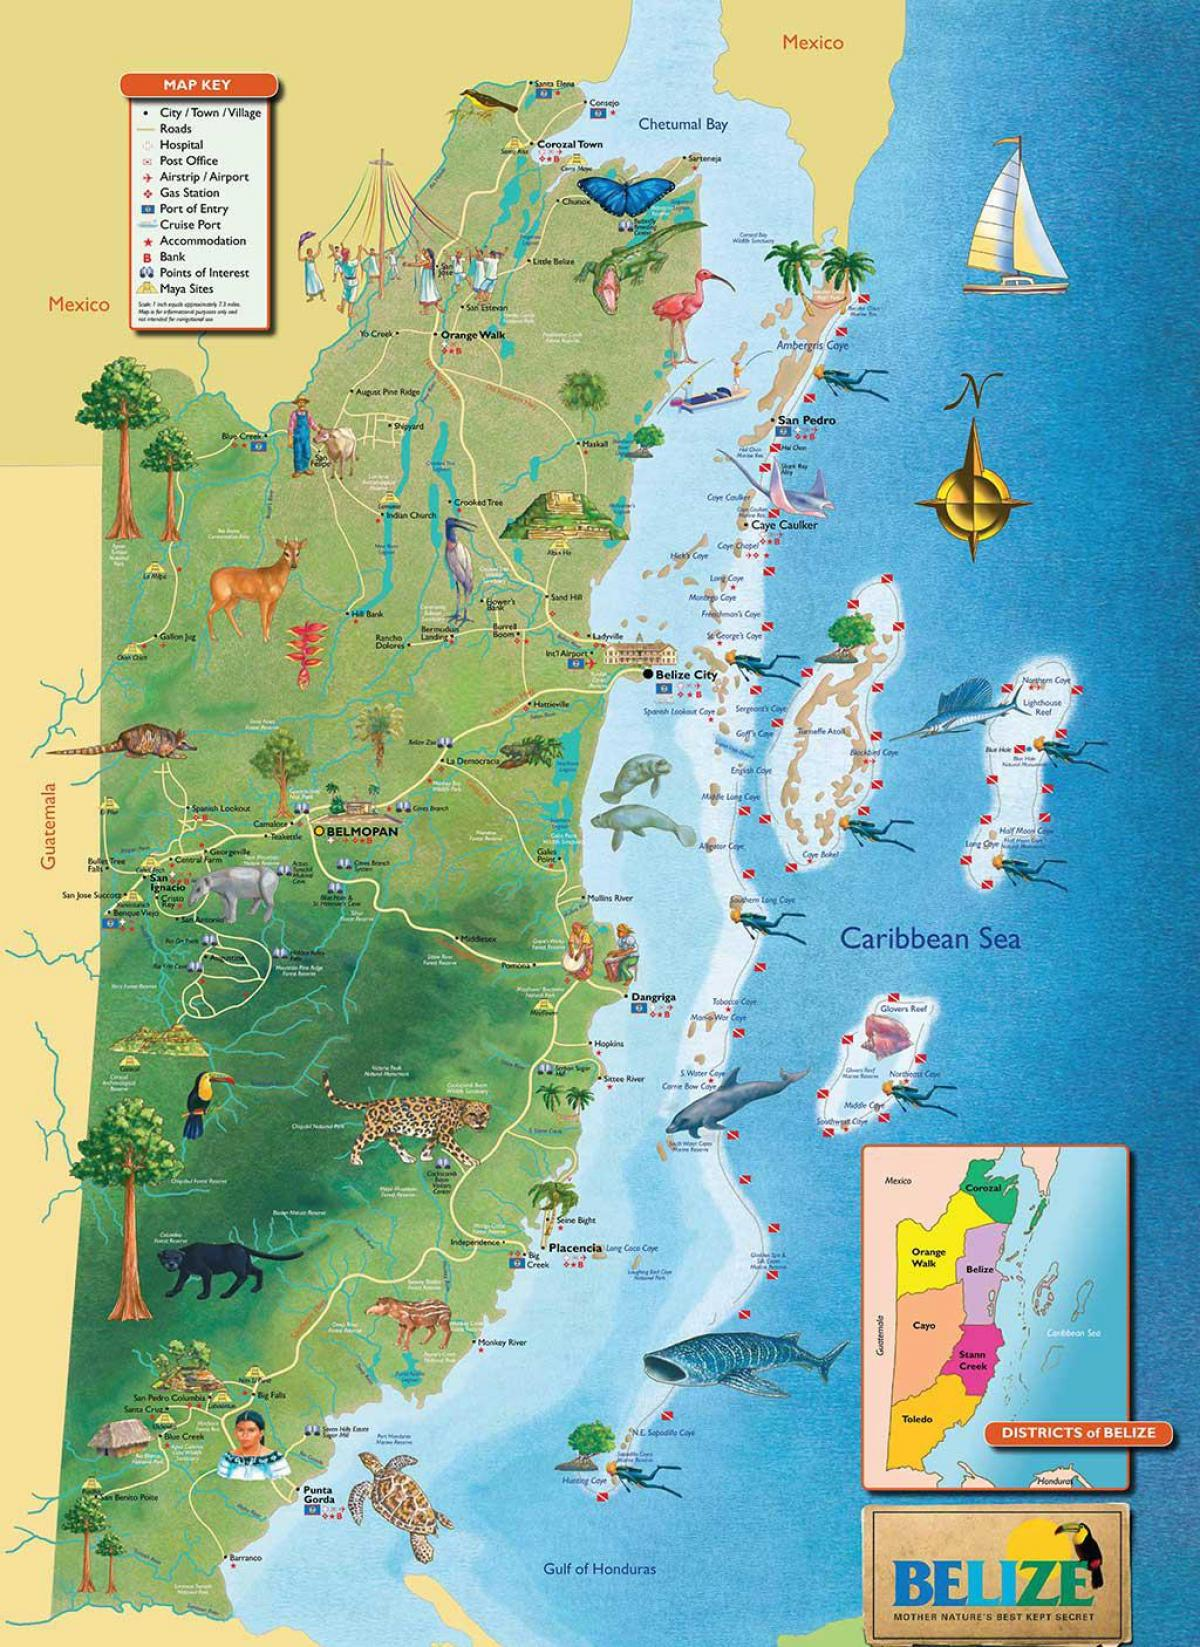 Belize Cruise Port Map